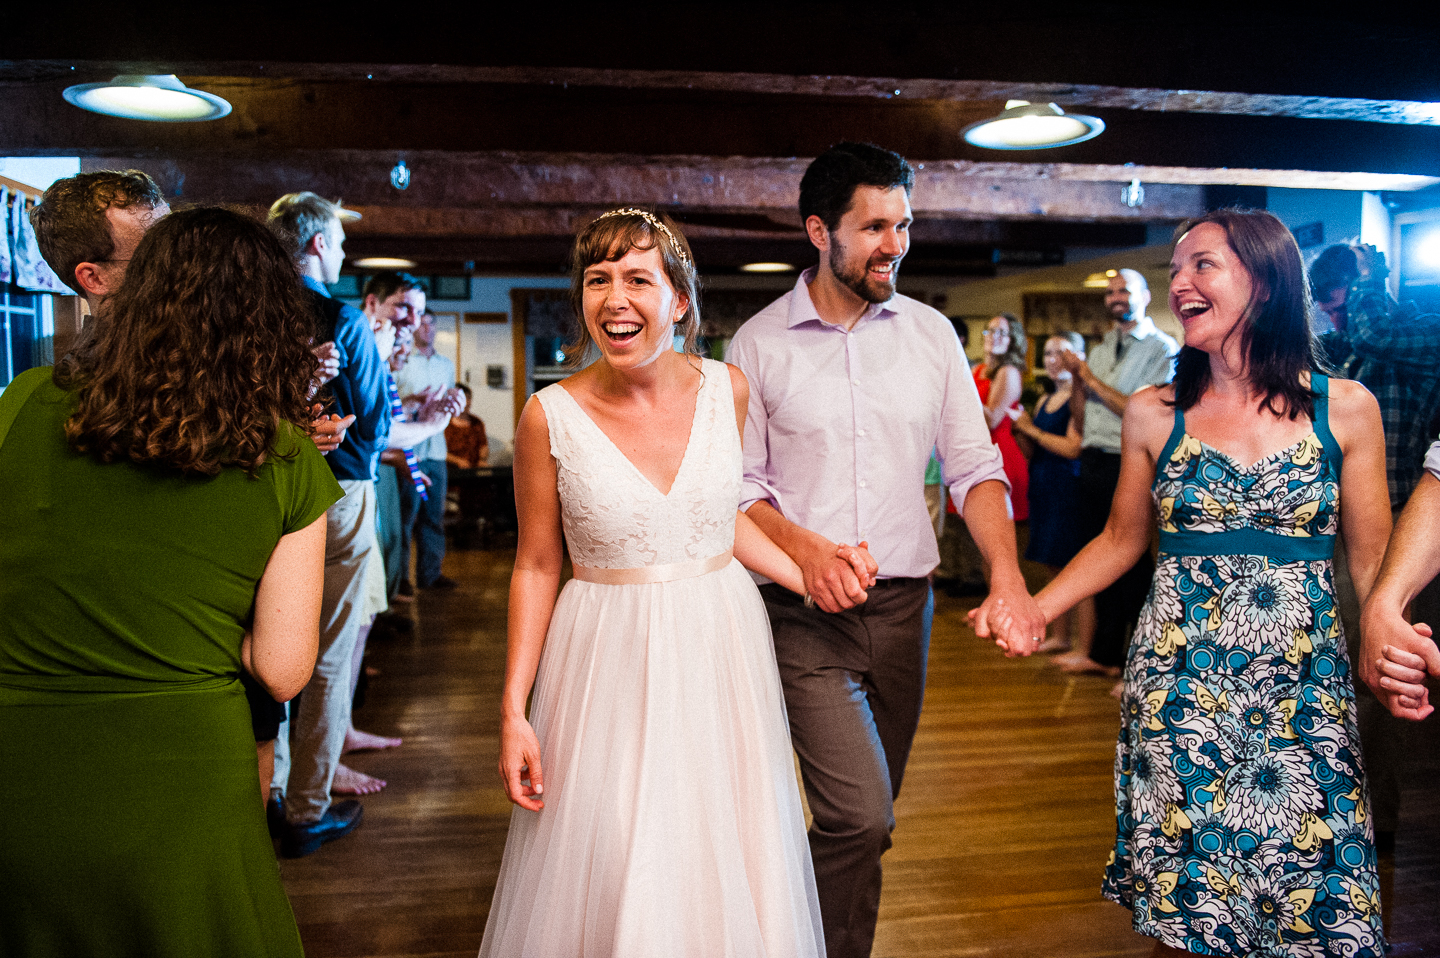 bride and groom were all smiles during their wedding reception